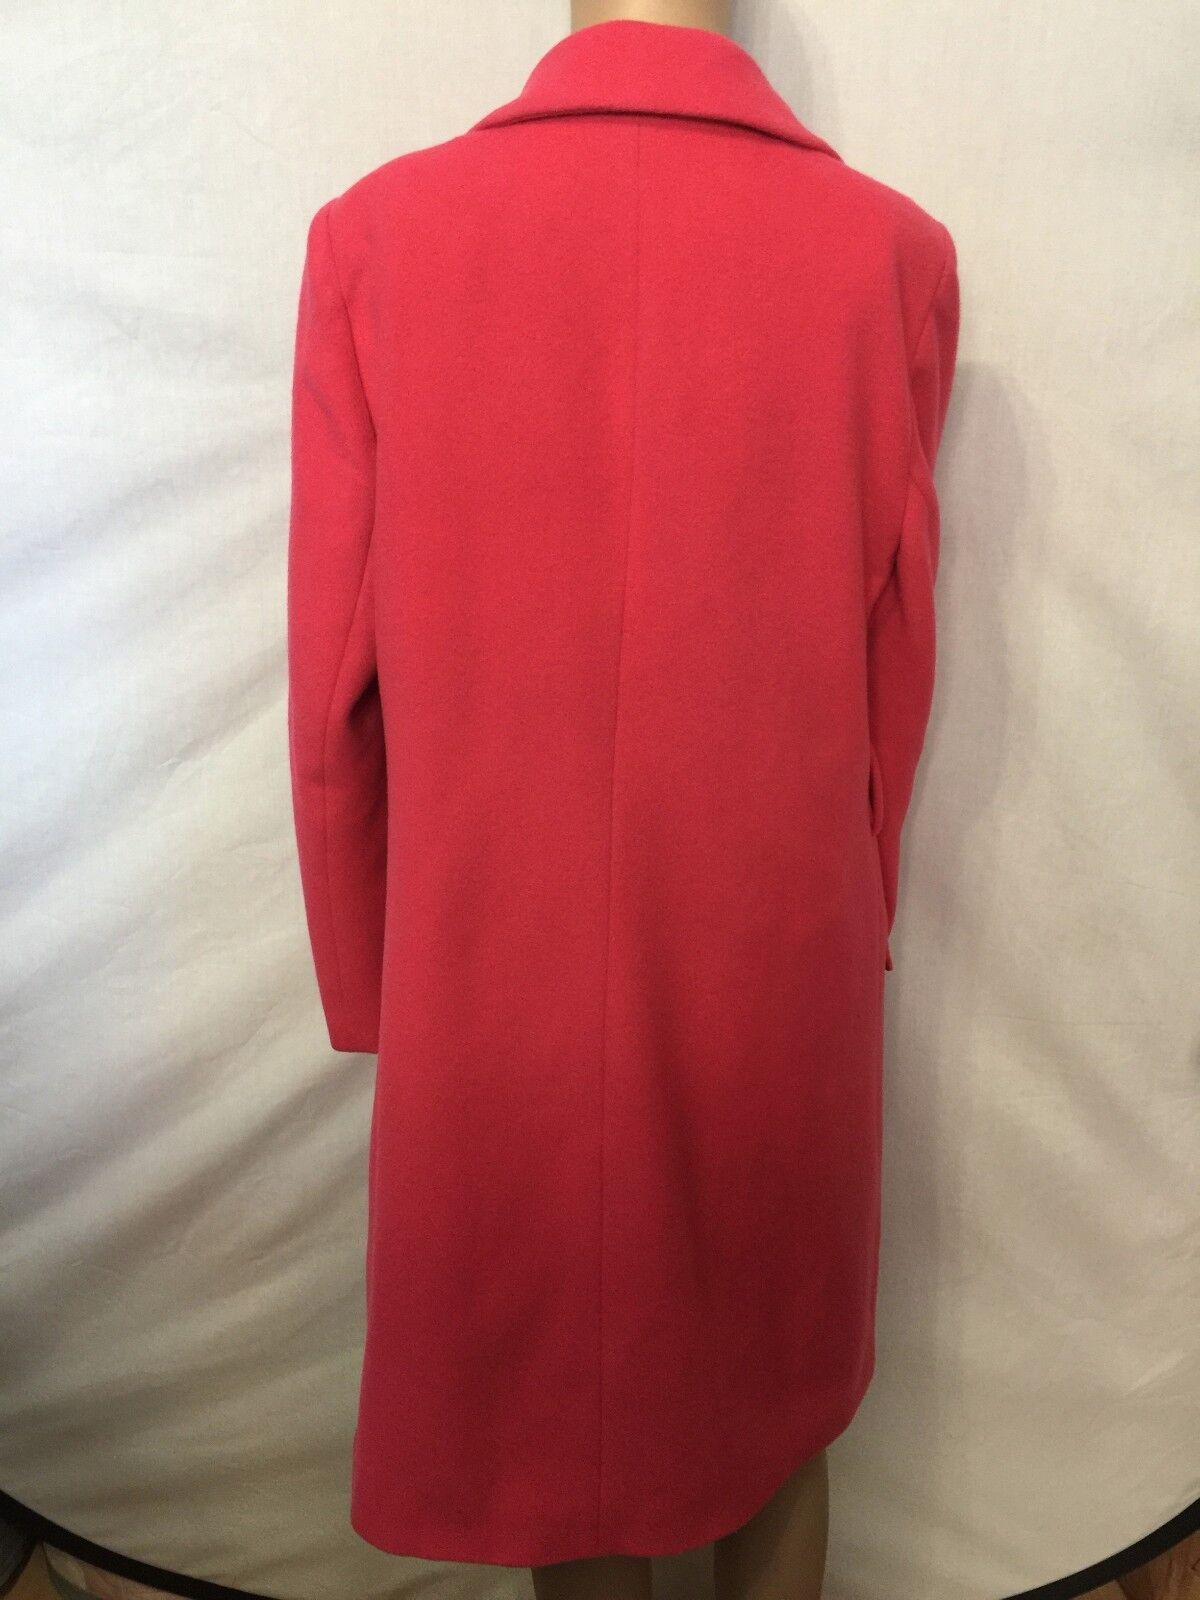 BODEN BRAND BRAND BRAND NEW CLAUDIA COAT SIZE US 8 8a37db